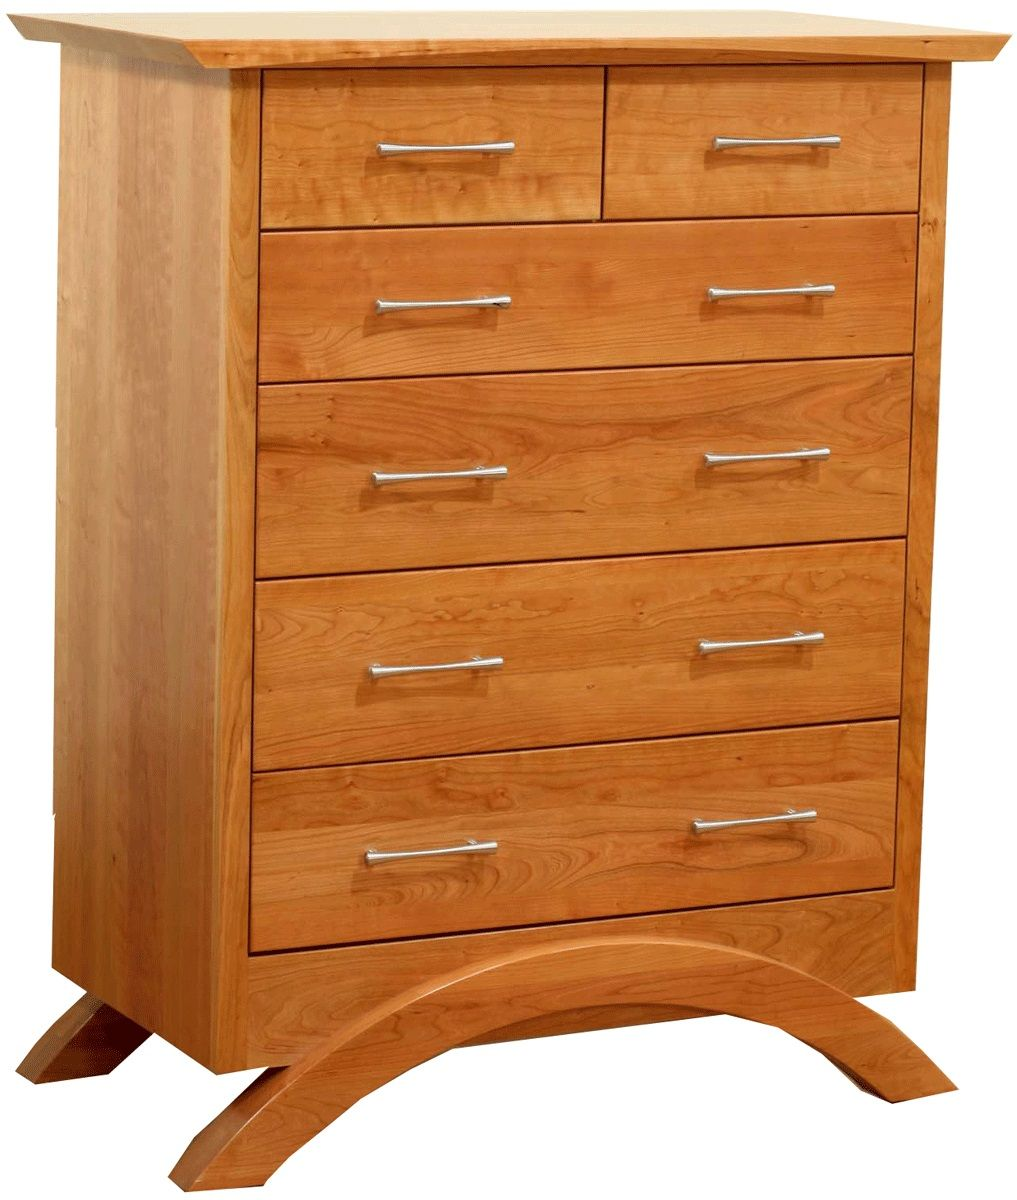 Neo Chest of Drawers in Natural Cherry